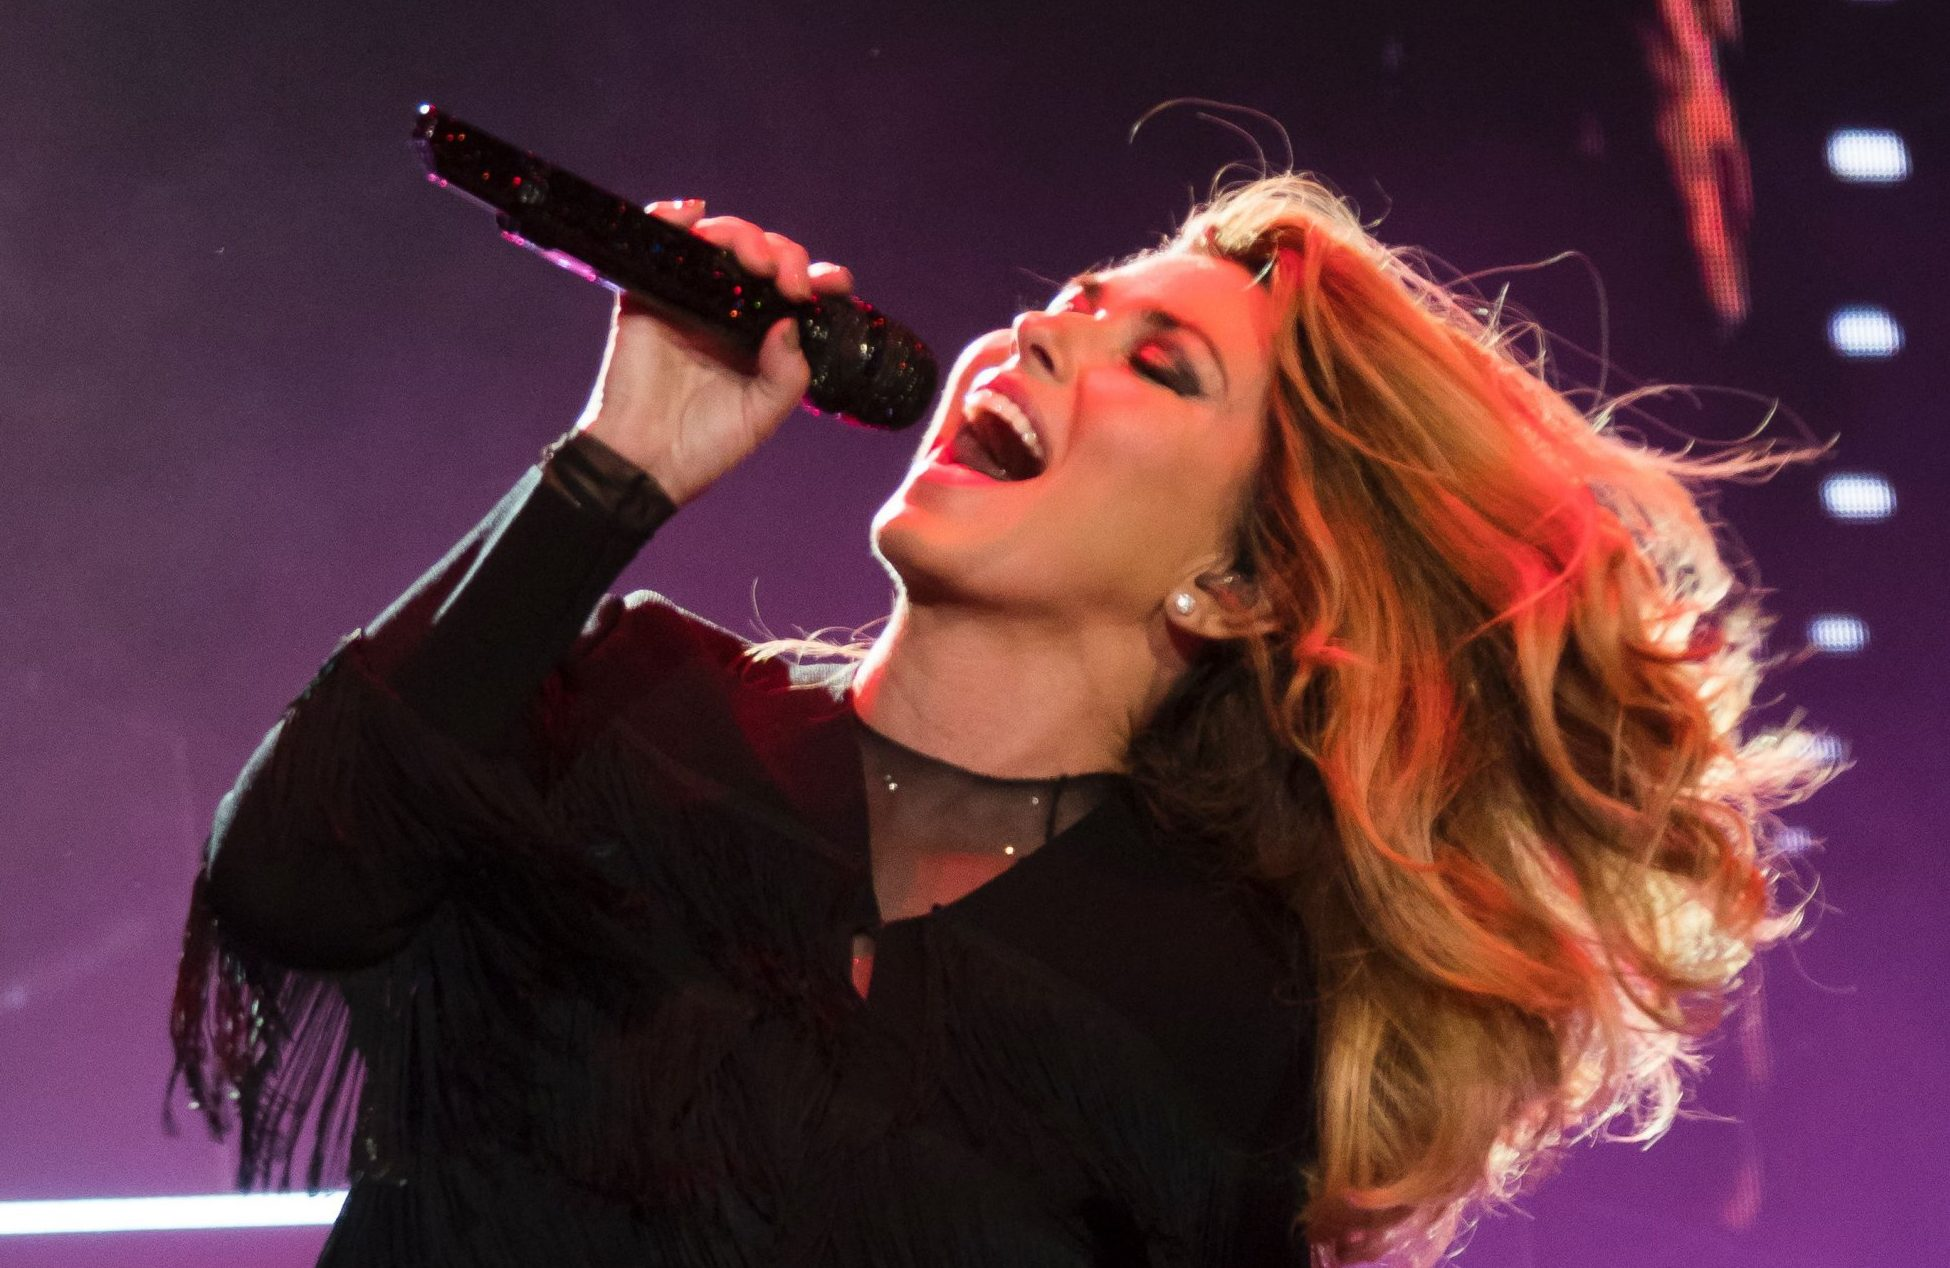 Shania Twain announces her first UK and Ireland tour in 13 years for autumn 2018